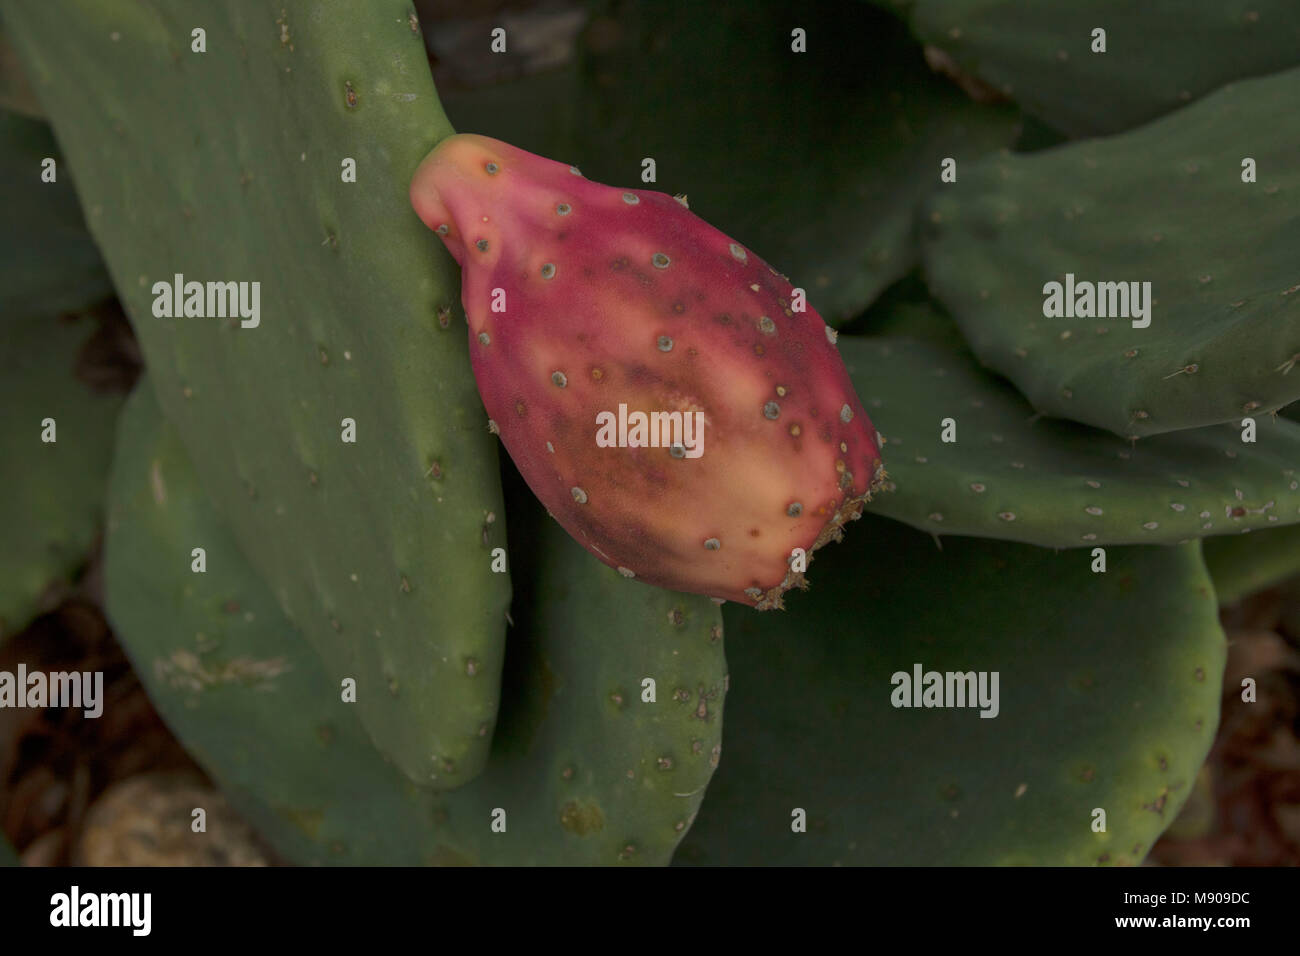 Prickly pear cactus fruit on the plant in Paphos, Cyprus, Mediterranean - Stock Image